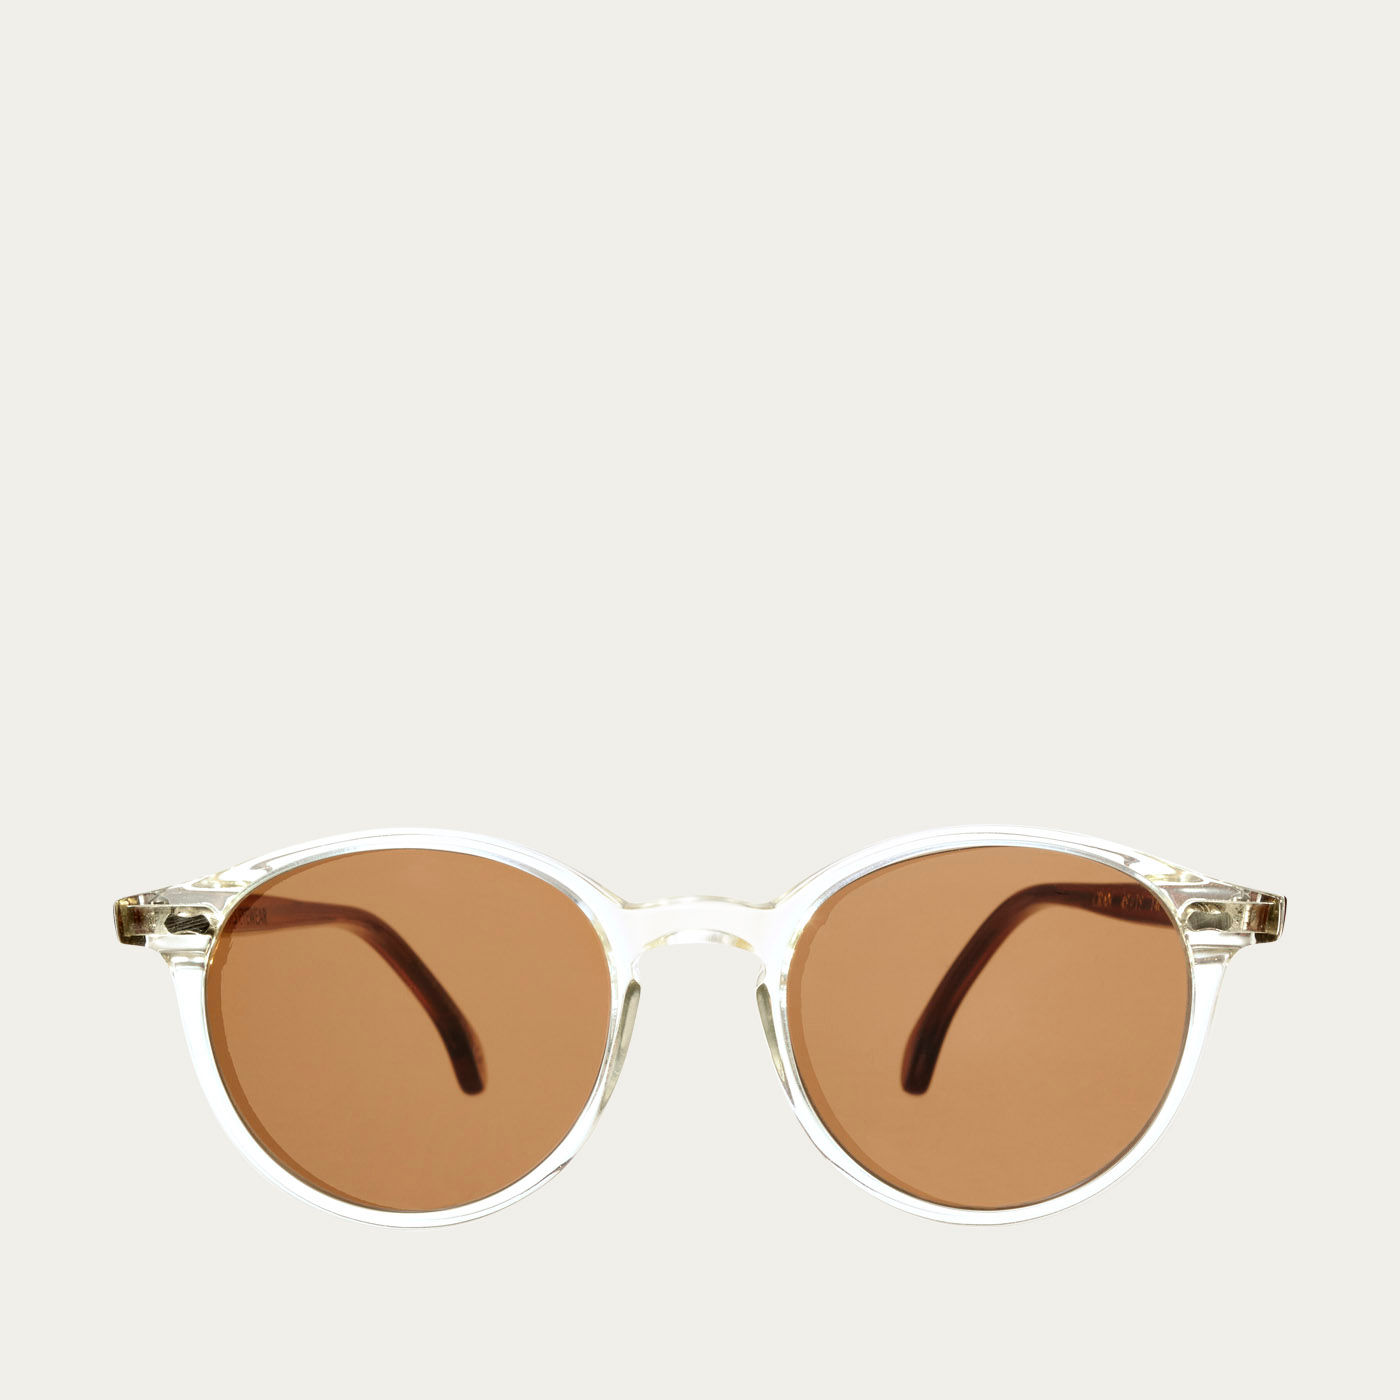 Bicolor Classic Tortoise and Champagne / Tobacco Cran Sunglasses | Bombinate